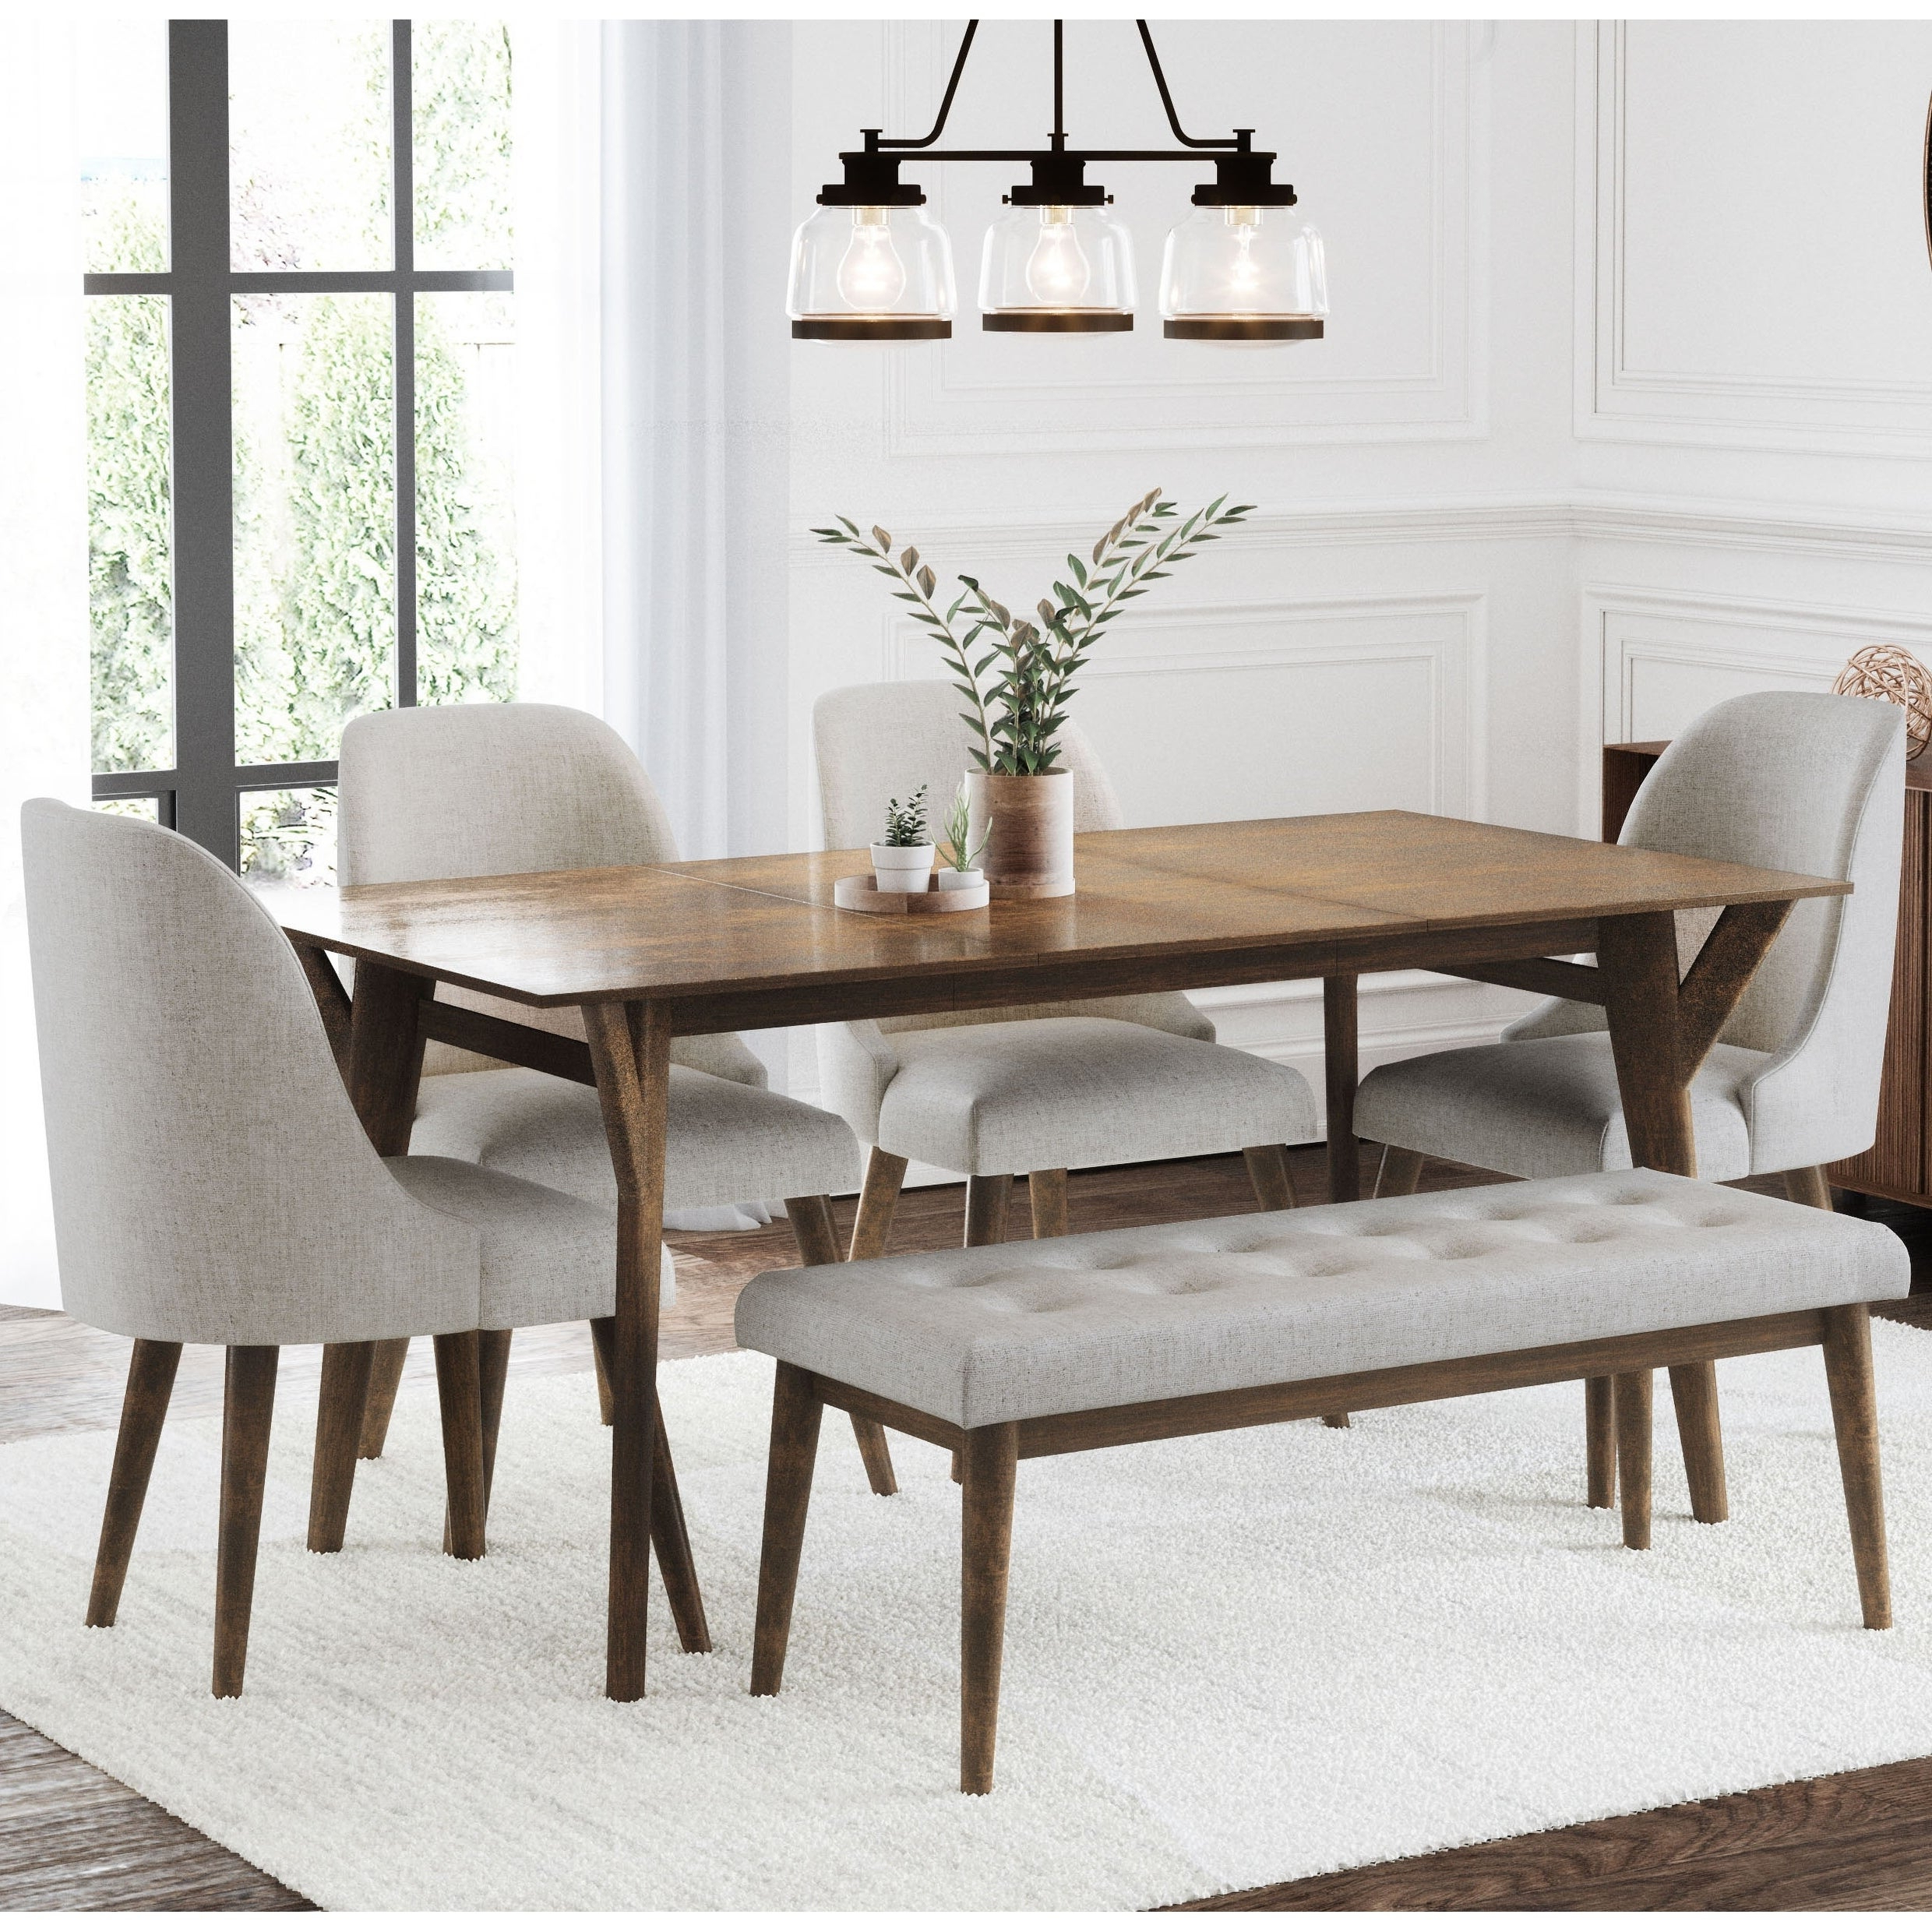 Well Liked Osterman 6 Piece Extendable Dining Sets (Set Of 6) For Buy 6 Piece Sets Kitchen & Dining Room Sets Online At Overstock (View 8 of 20)